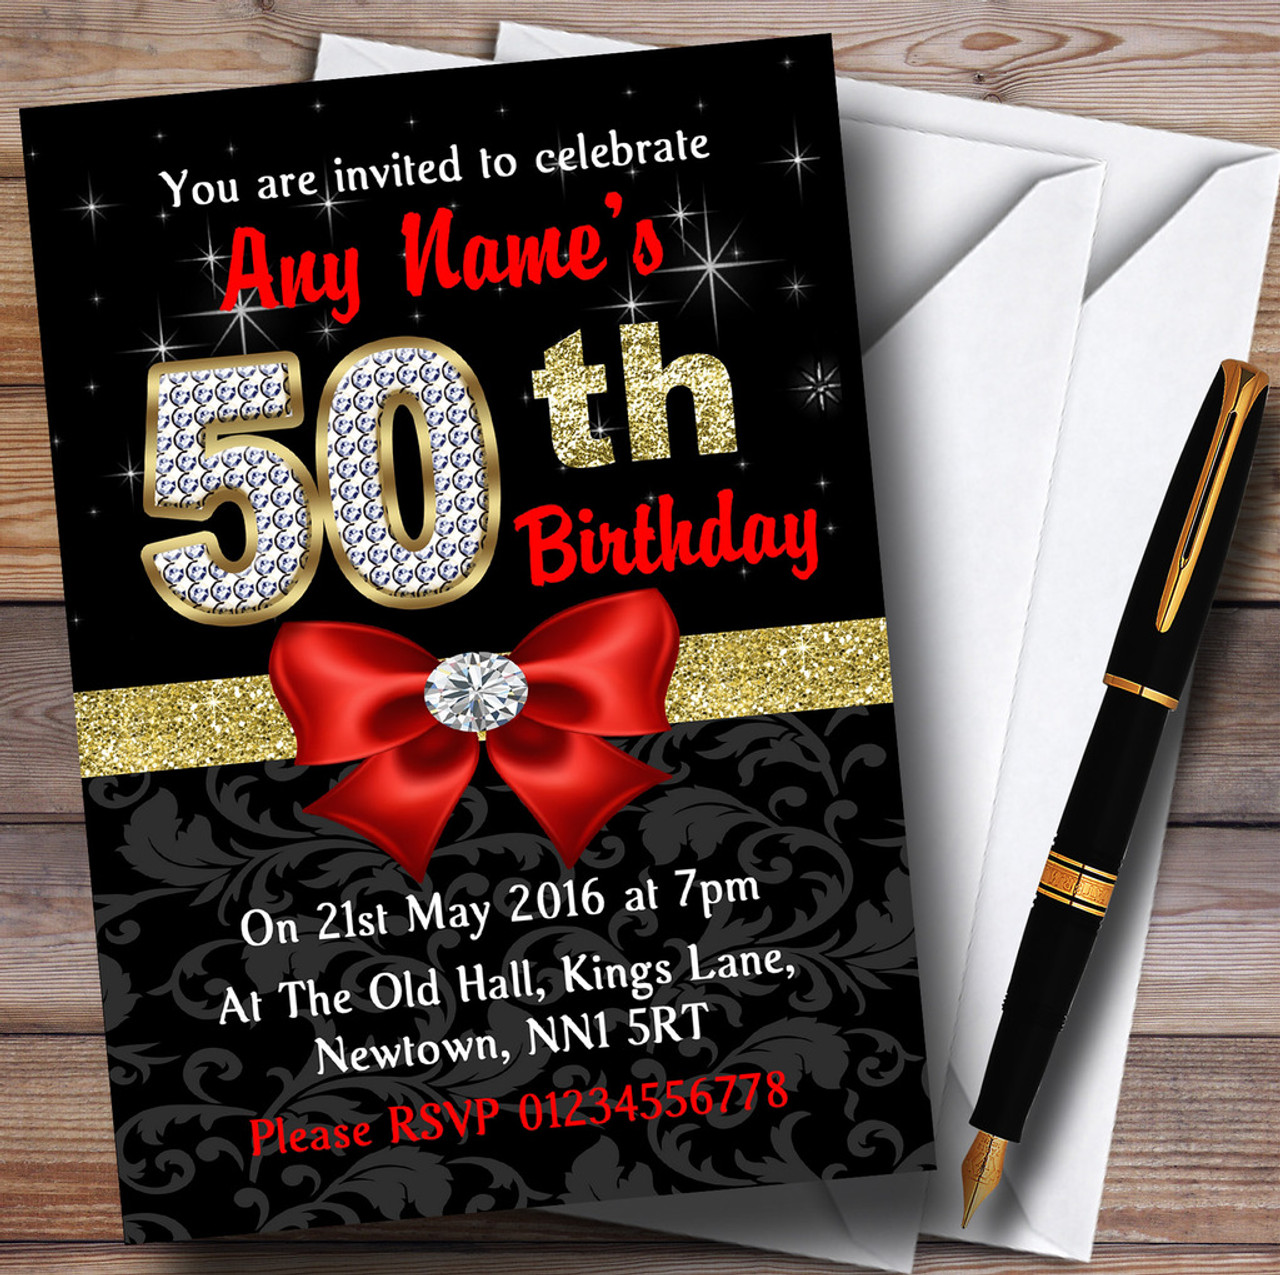 Red Black Gold Diamond 50th Birthday Party Personalised. Primitive Home Decor Ideas. Decorative Sliding Doors. Rooms For Rent Escondido. Decorative Metal Picture Frames. Decorative Window Shades Roller. Art Deco Dining Room. Decorative White Vases. Tie Dye Decorations